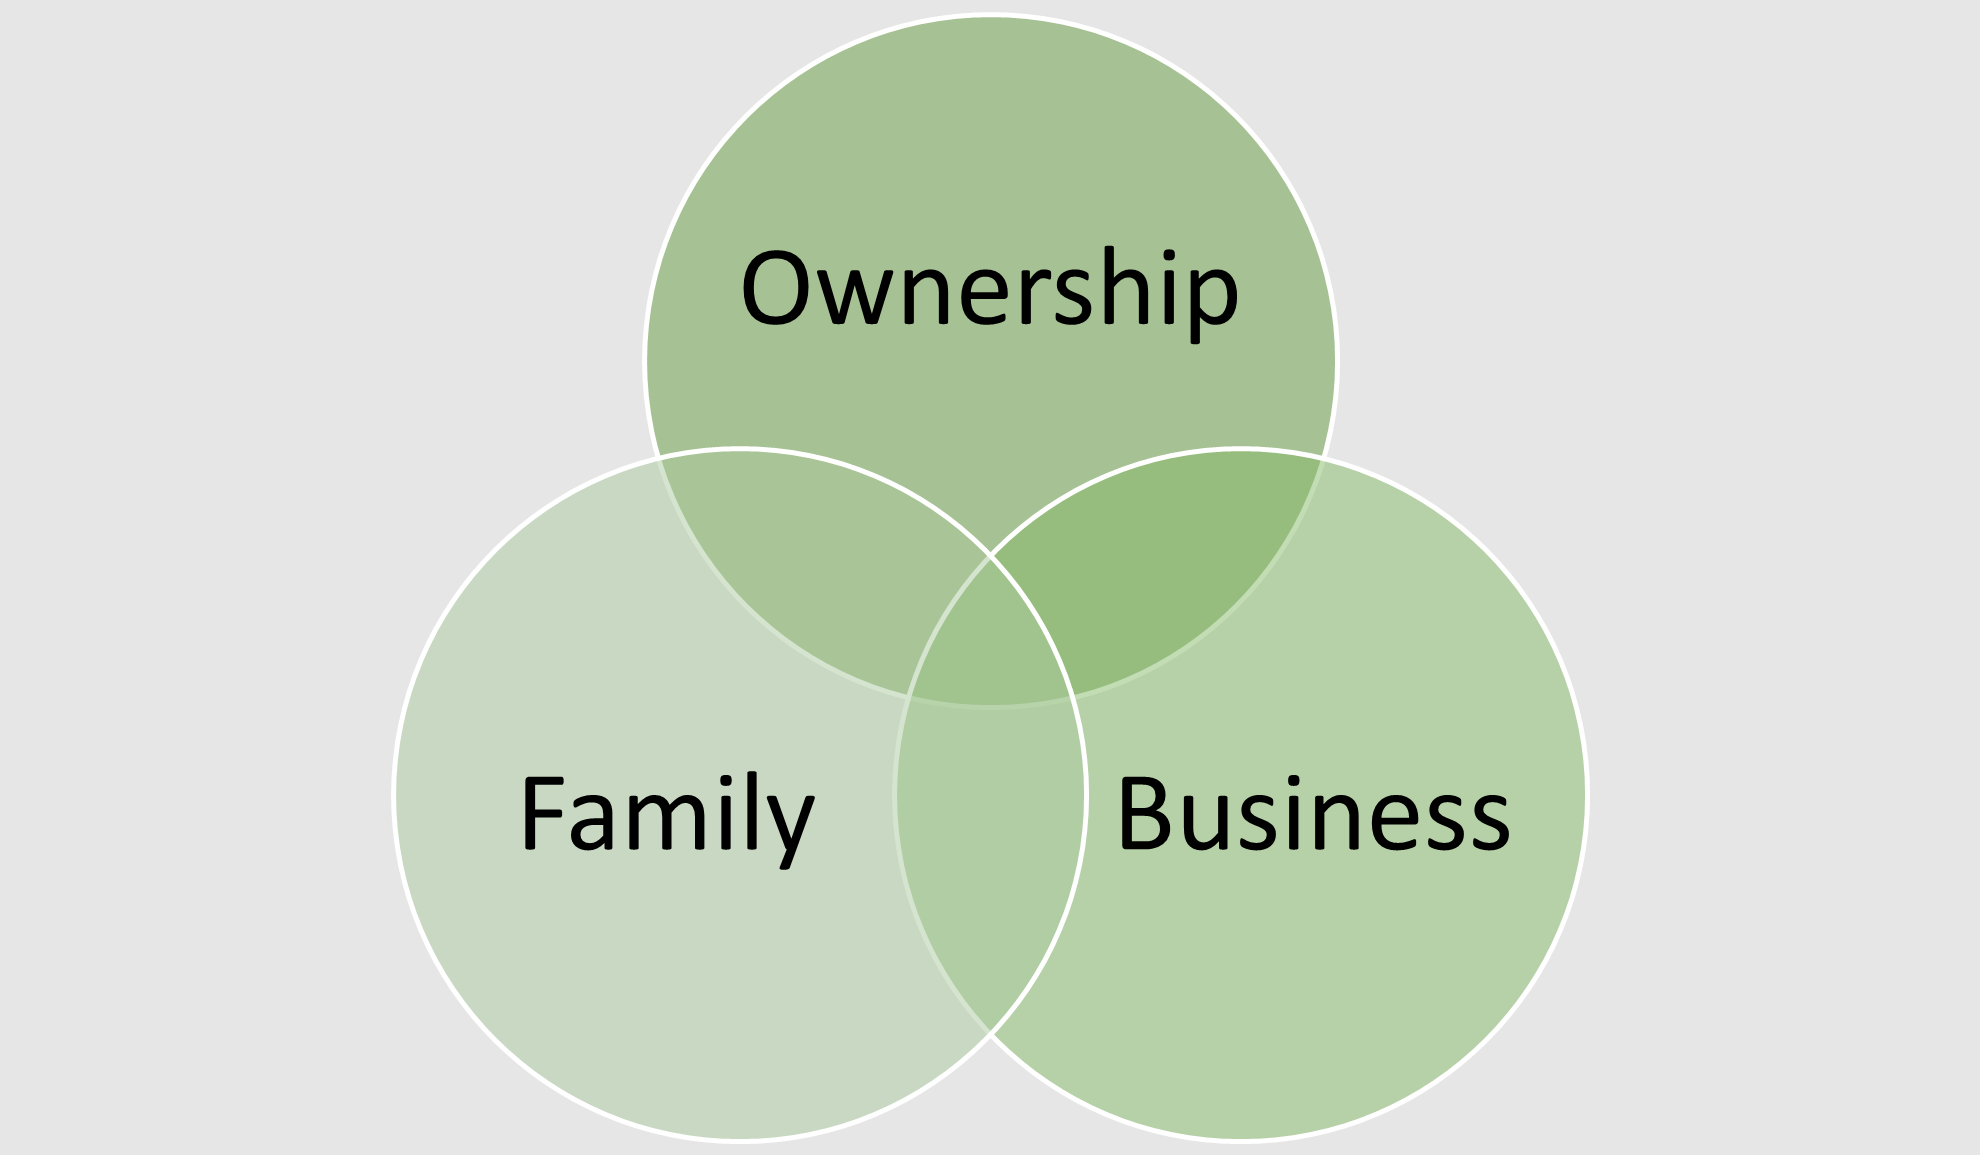 Venn diagram of three family business silos including ownership, family and business